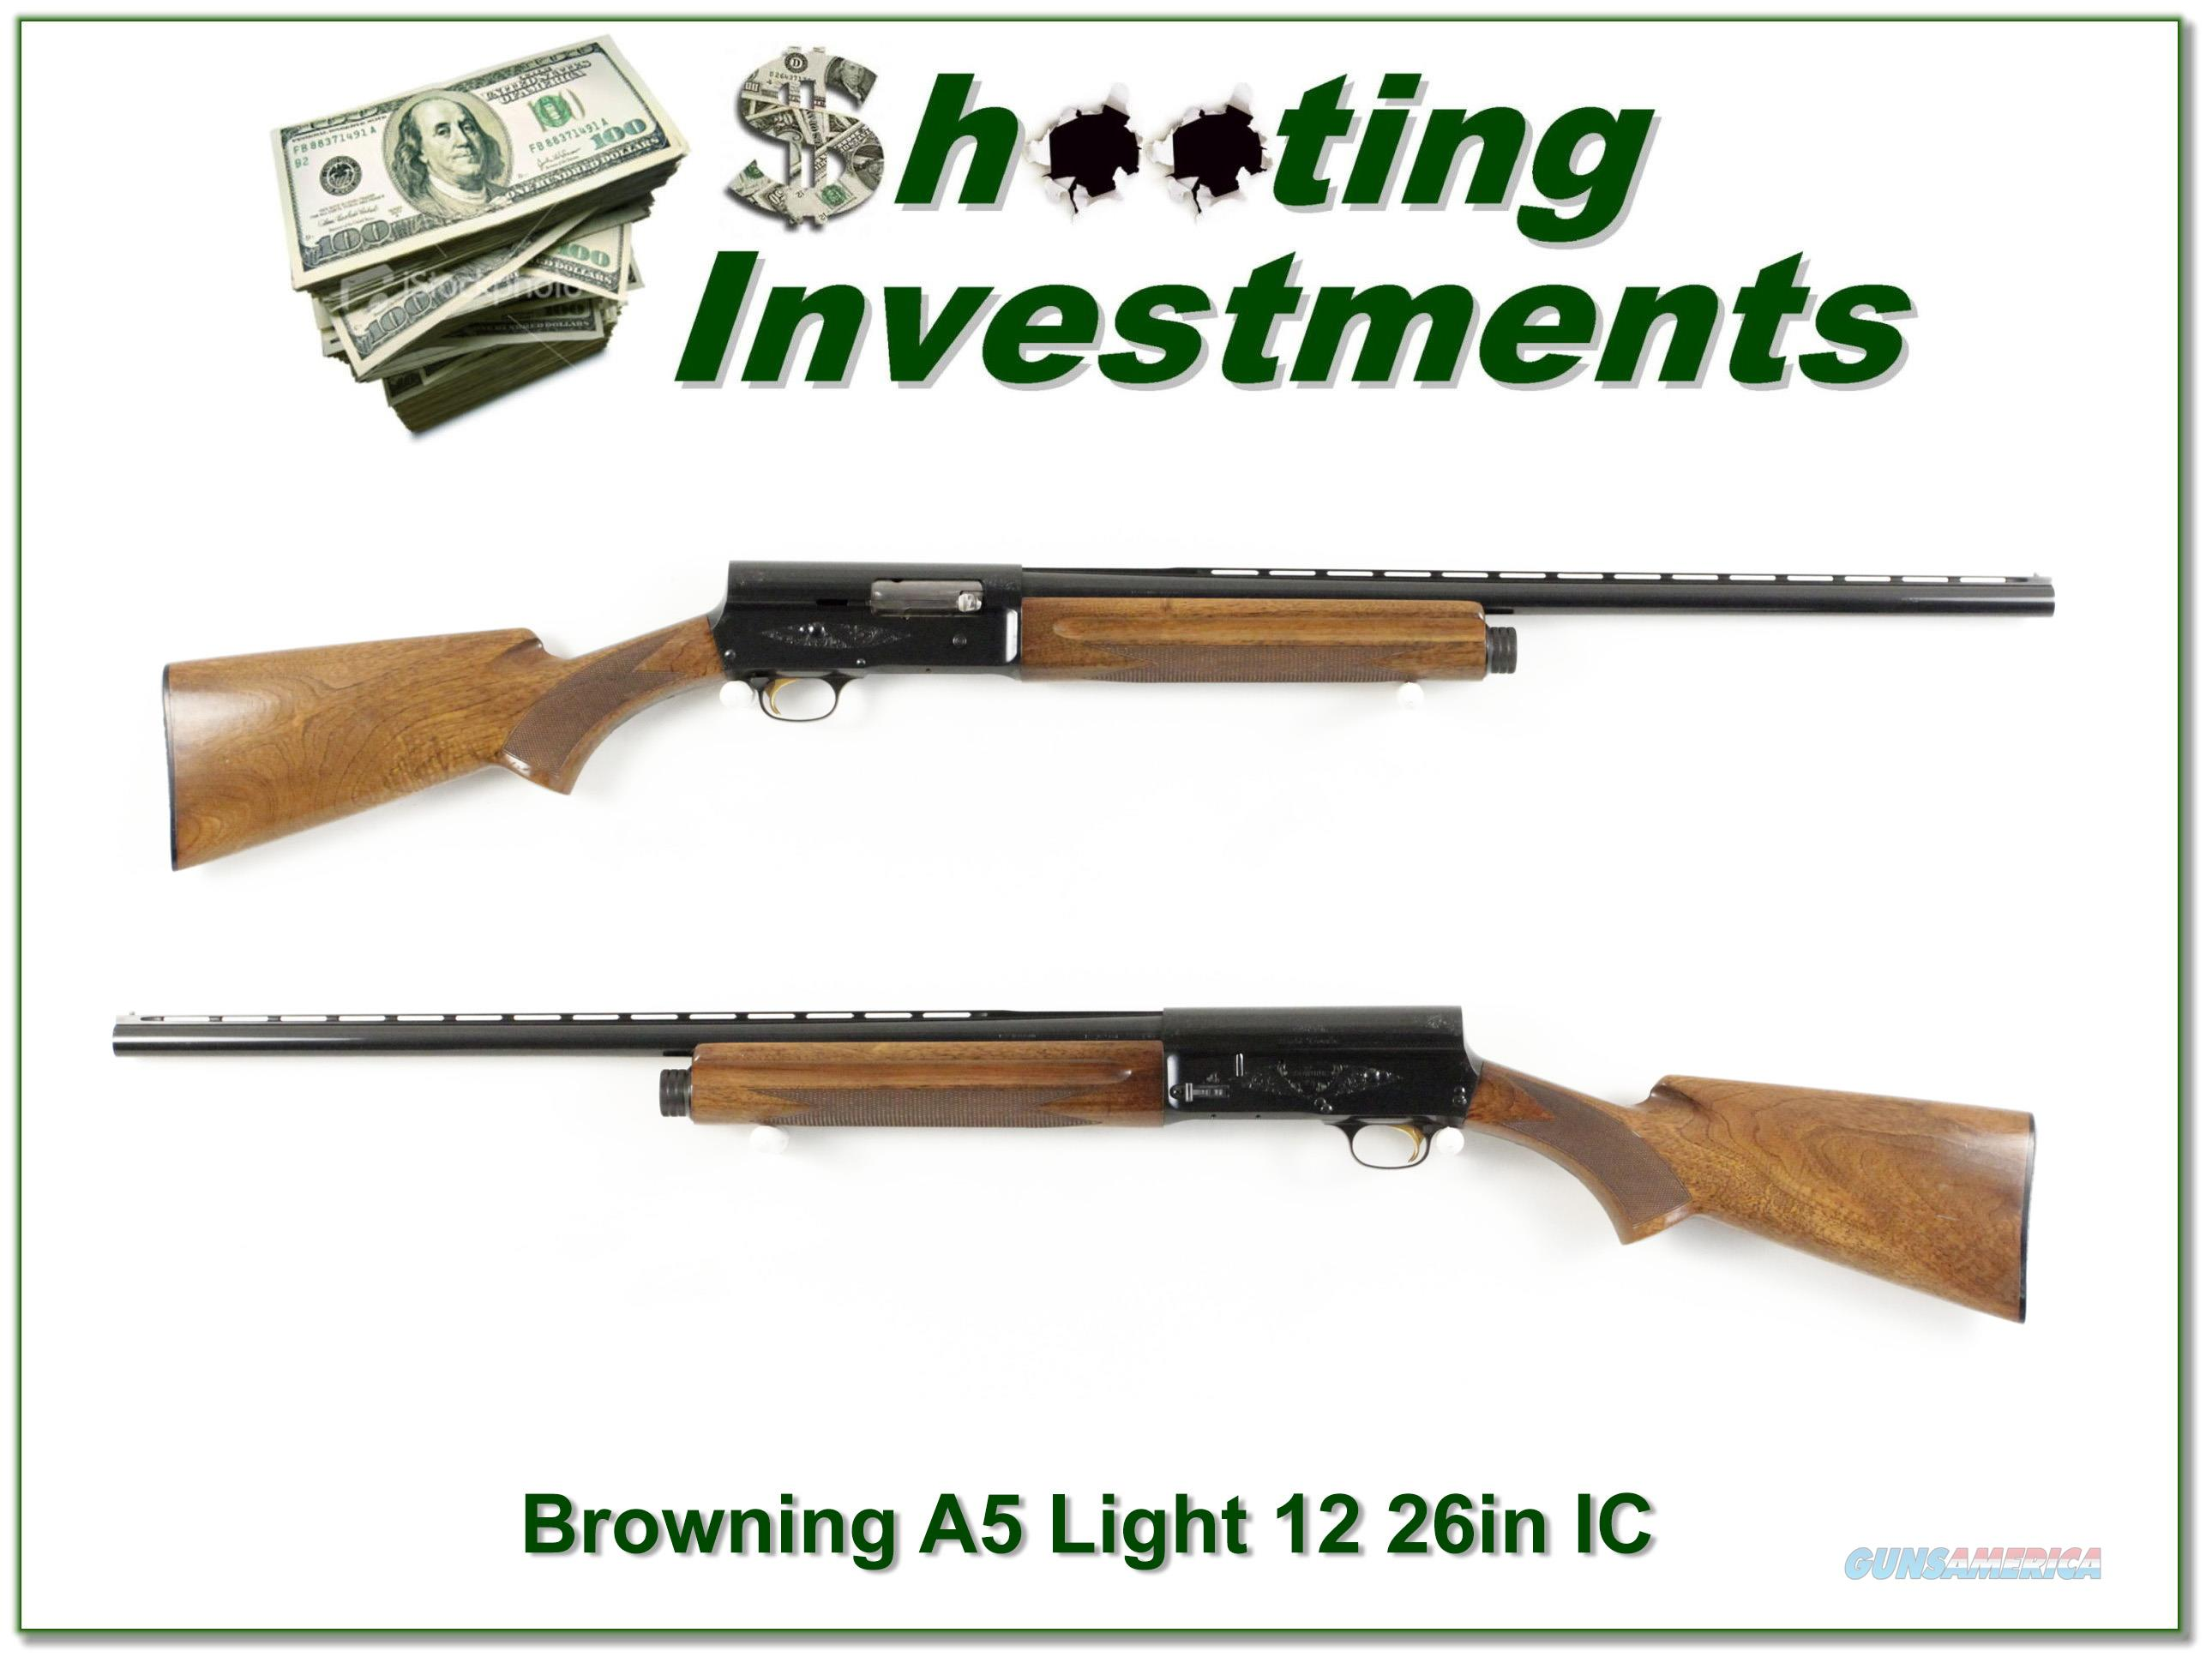 Browning A5 Light 12 72 Belgium 26in IC VR!  Guns > Shotguns > Browning Shotguns > Autoloaders > Hunting